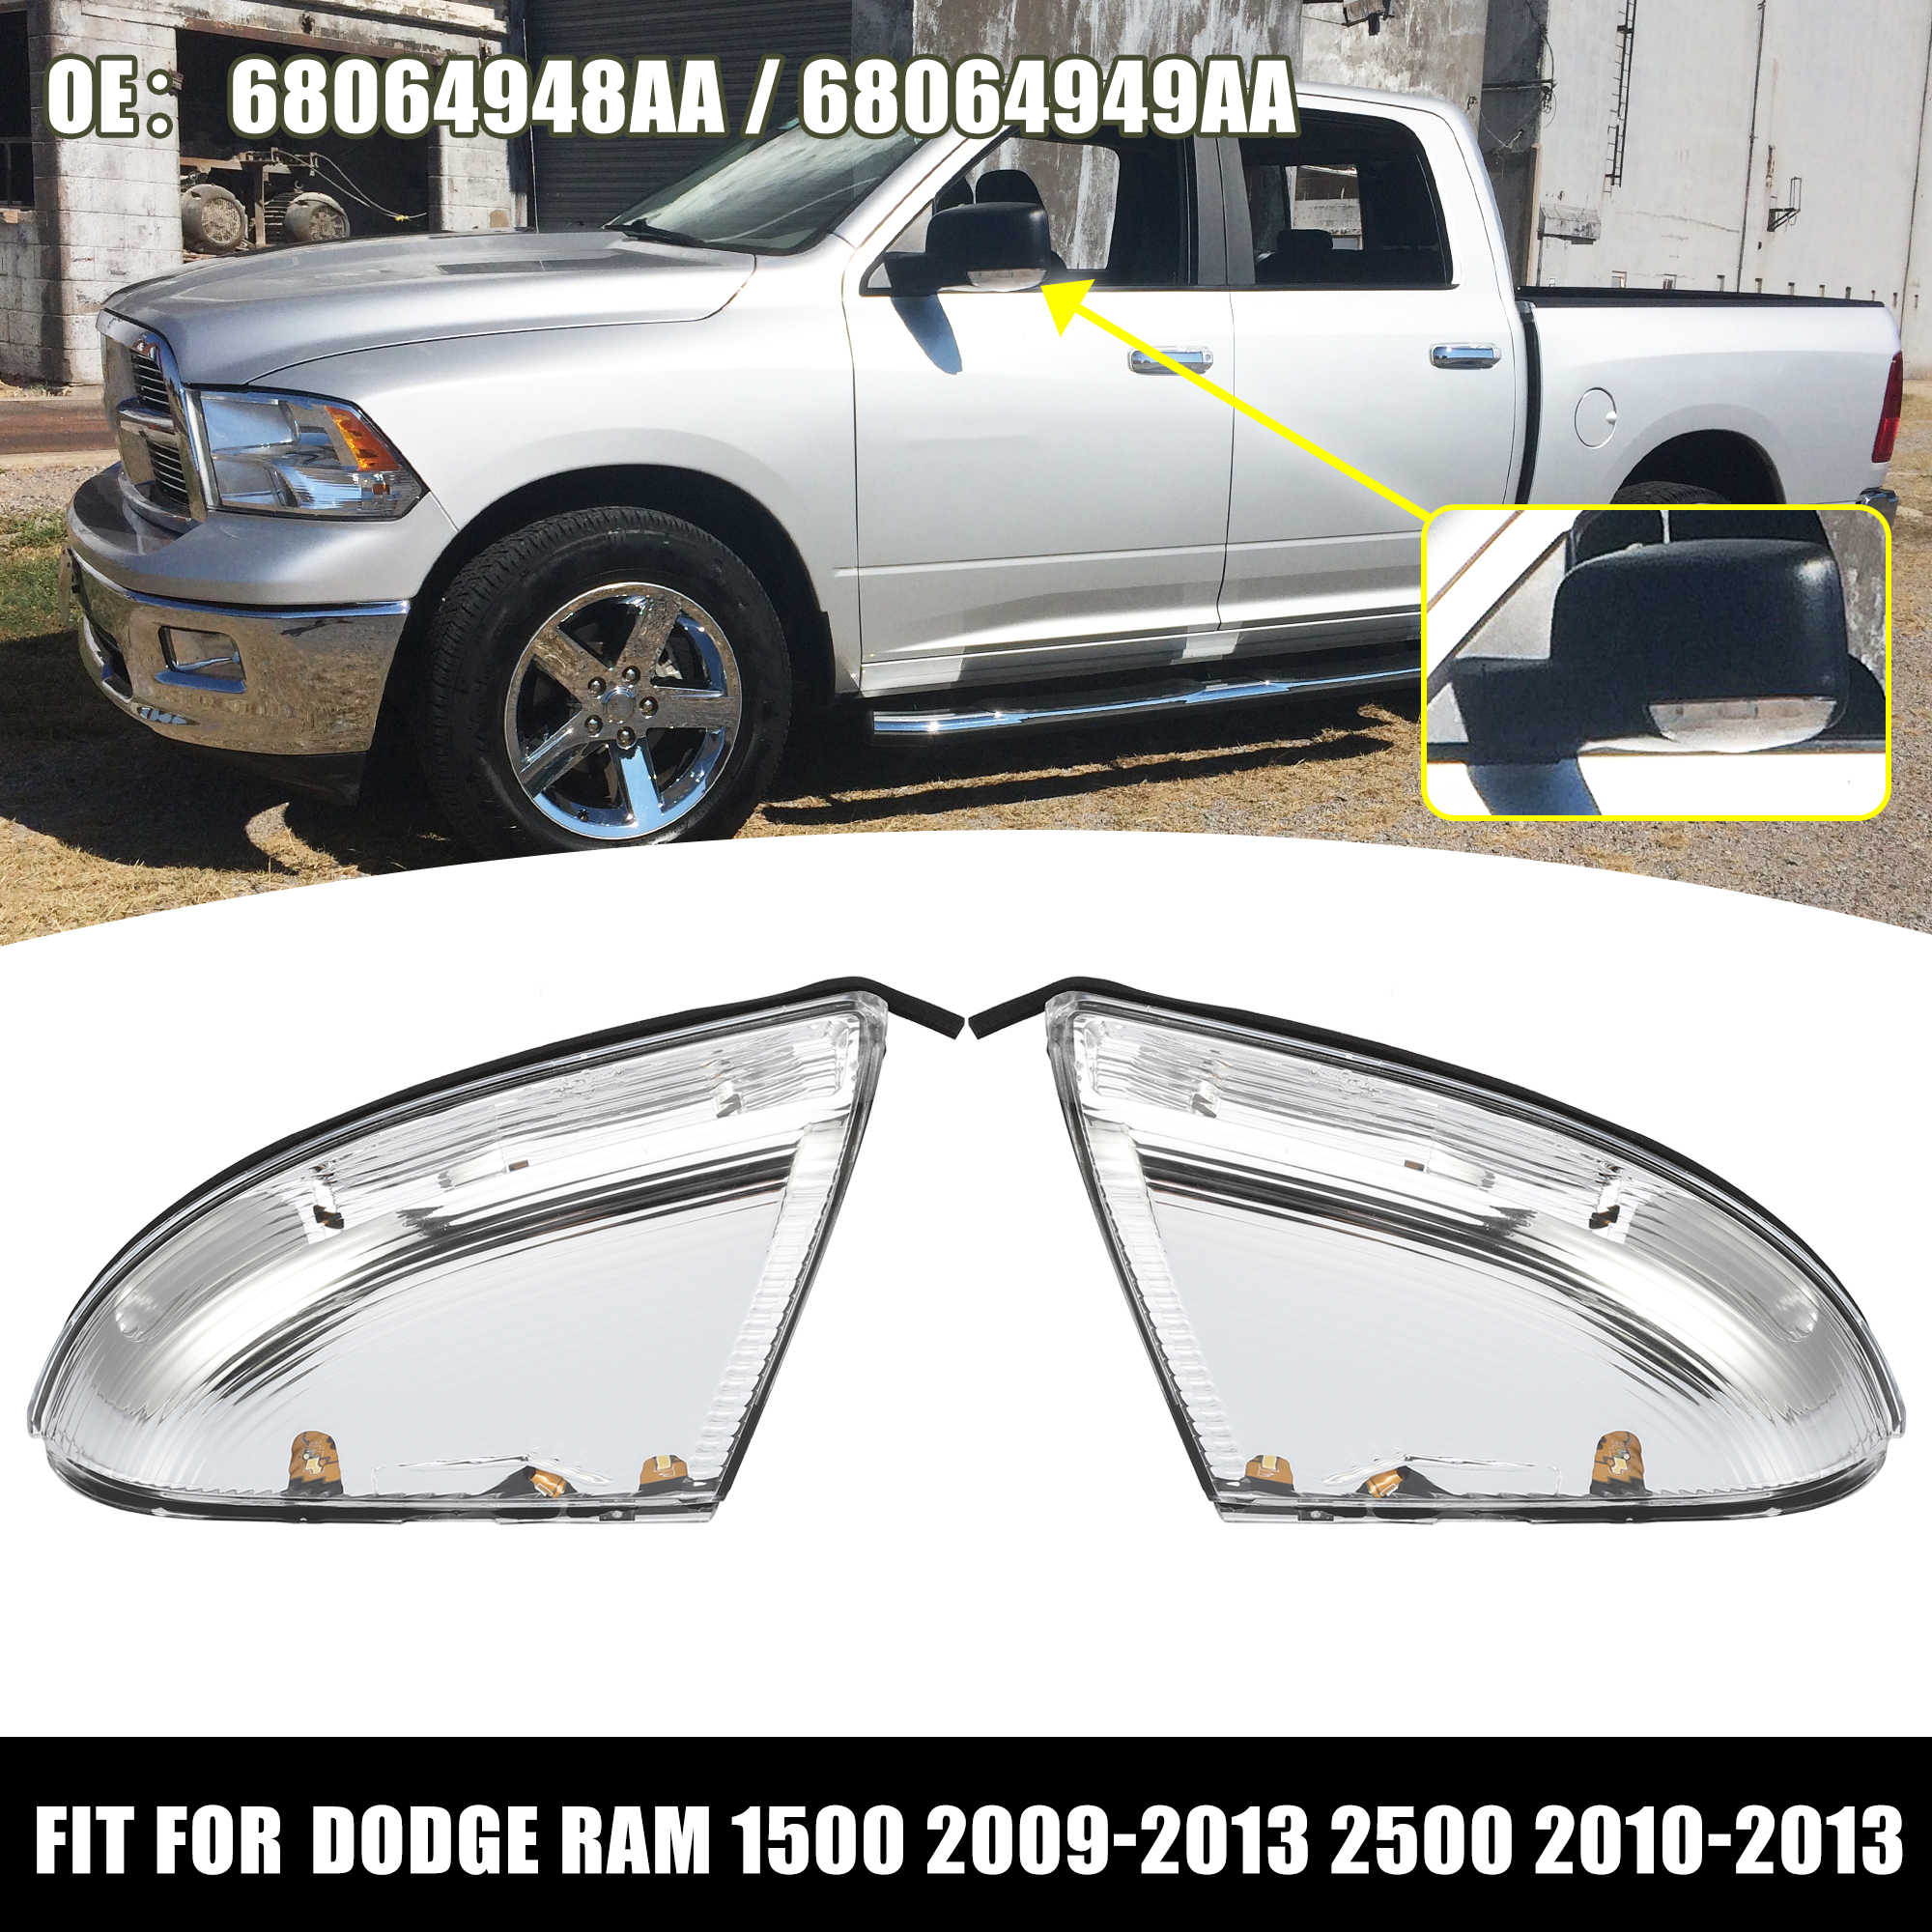 X AUTOHAUX 1 Pair Front Driving Left Side Mirror Turn Signal Light Housing for Dodge for Ram 1500 2009-2013 2500 2010-2013 Replaces 68064948AA 68064949AA